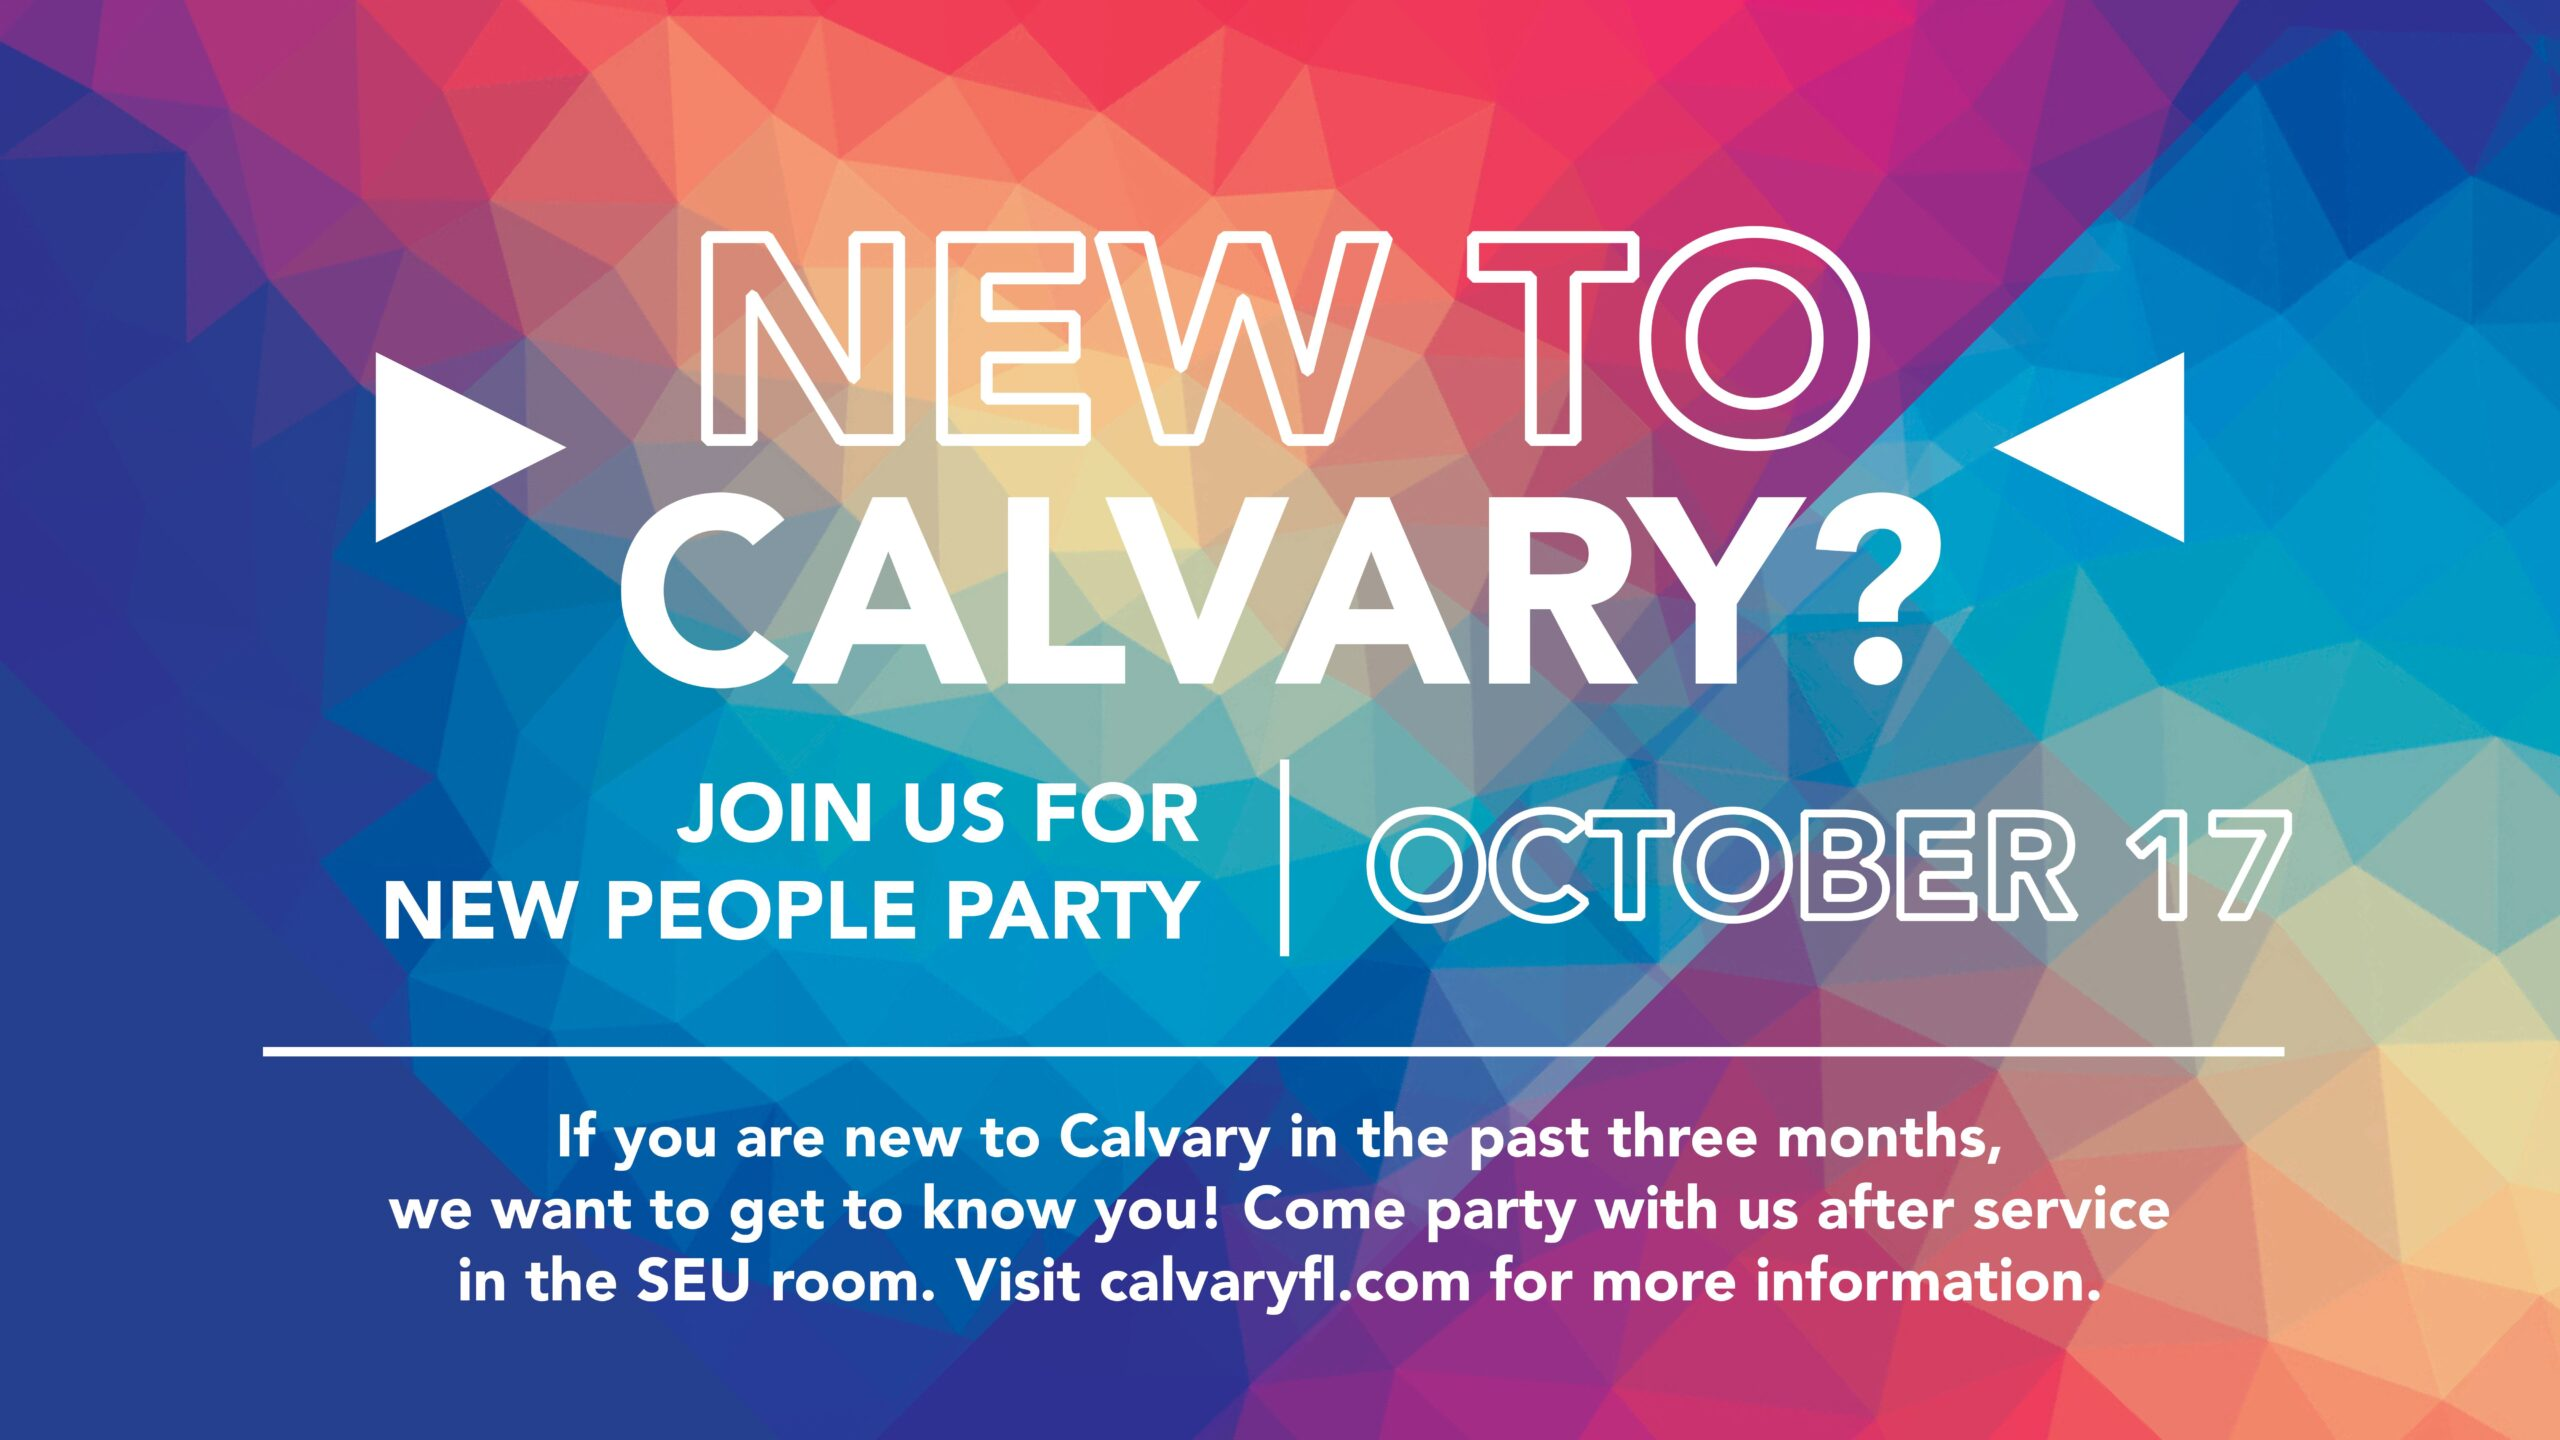 New People Party - October 17th 2021 - CalvaryFL - Calvary Christian Center